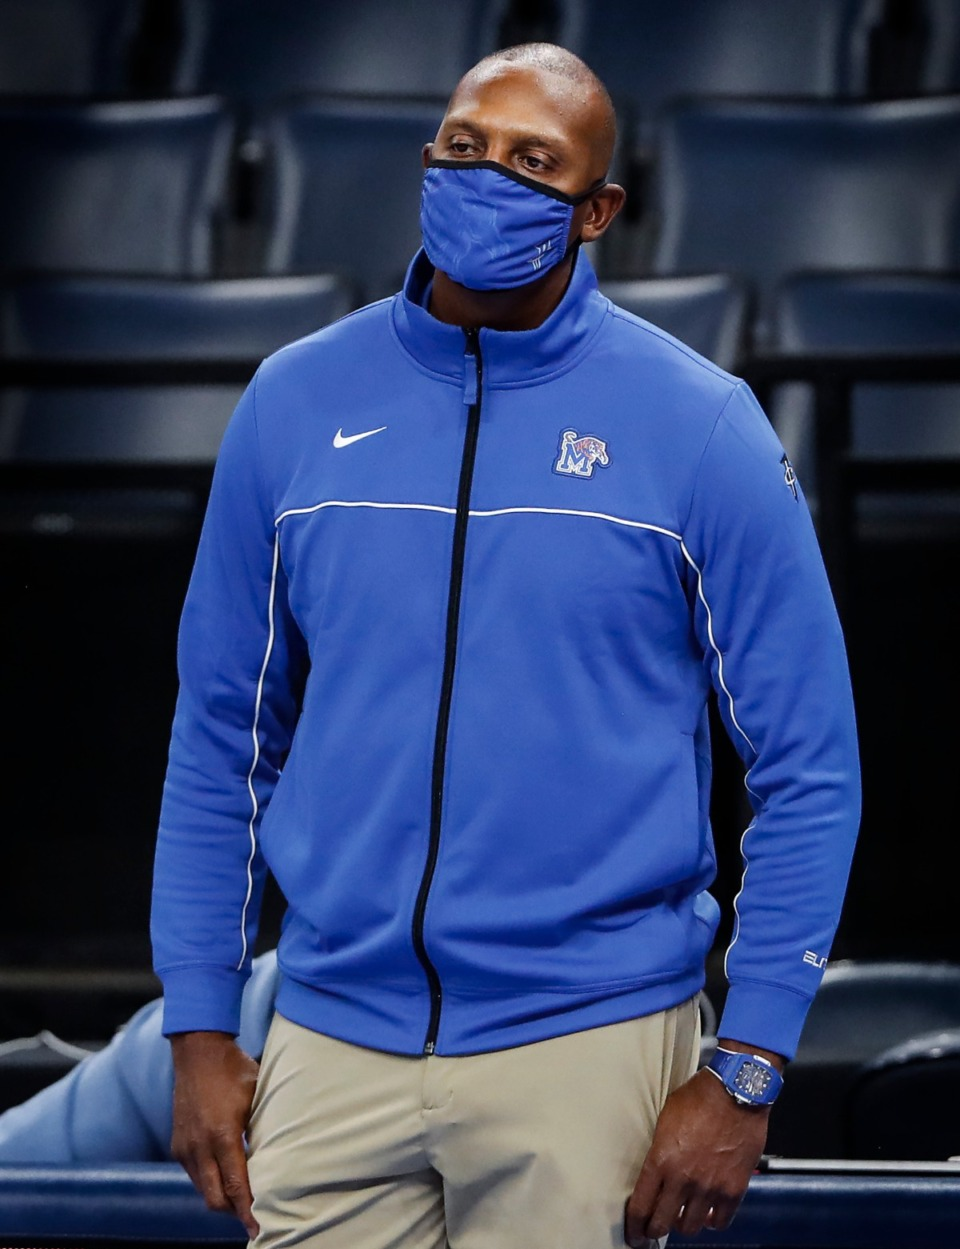 <strong>&ldquo;We did not have plans for him to play during the season. That could change at any time,&rdquo; Memphis coach Penny Hardaway said Wednesday about Jordan Nesbitt.</strong> (Mark Weber/The Daily Memphian)